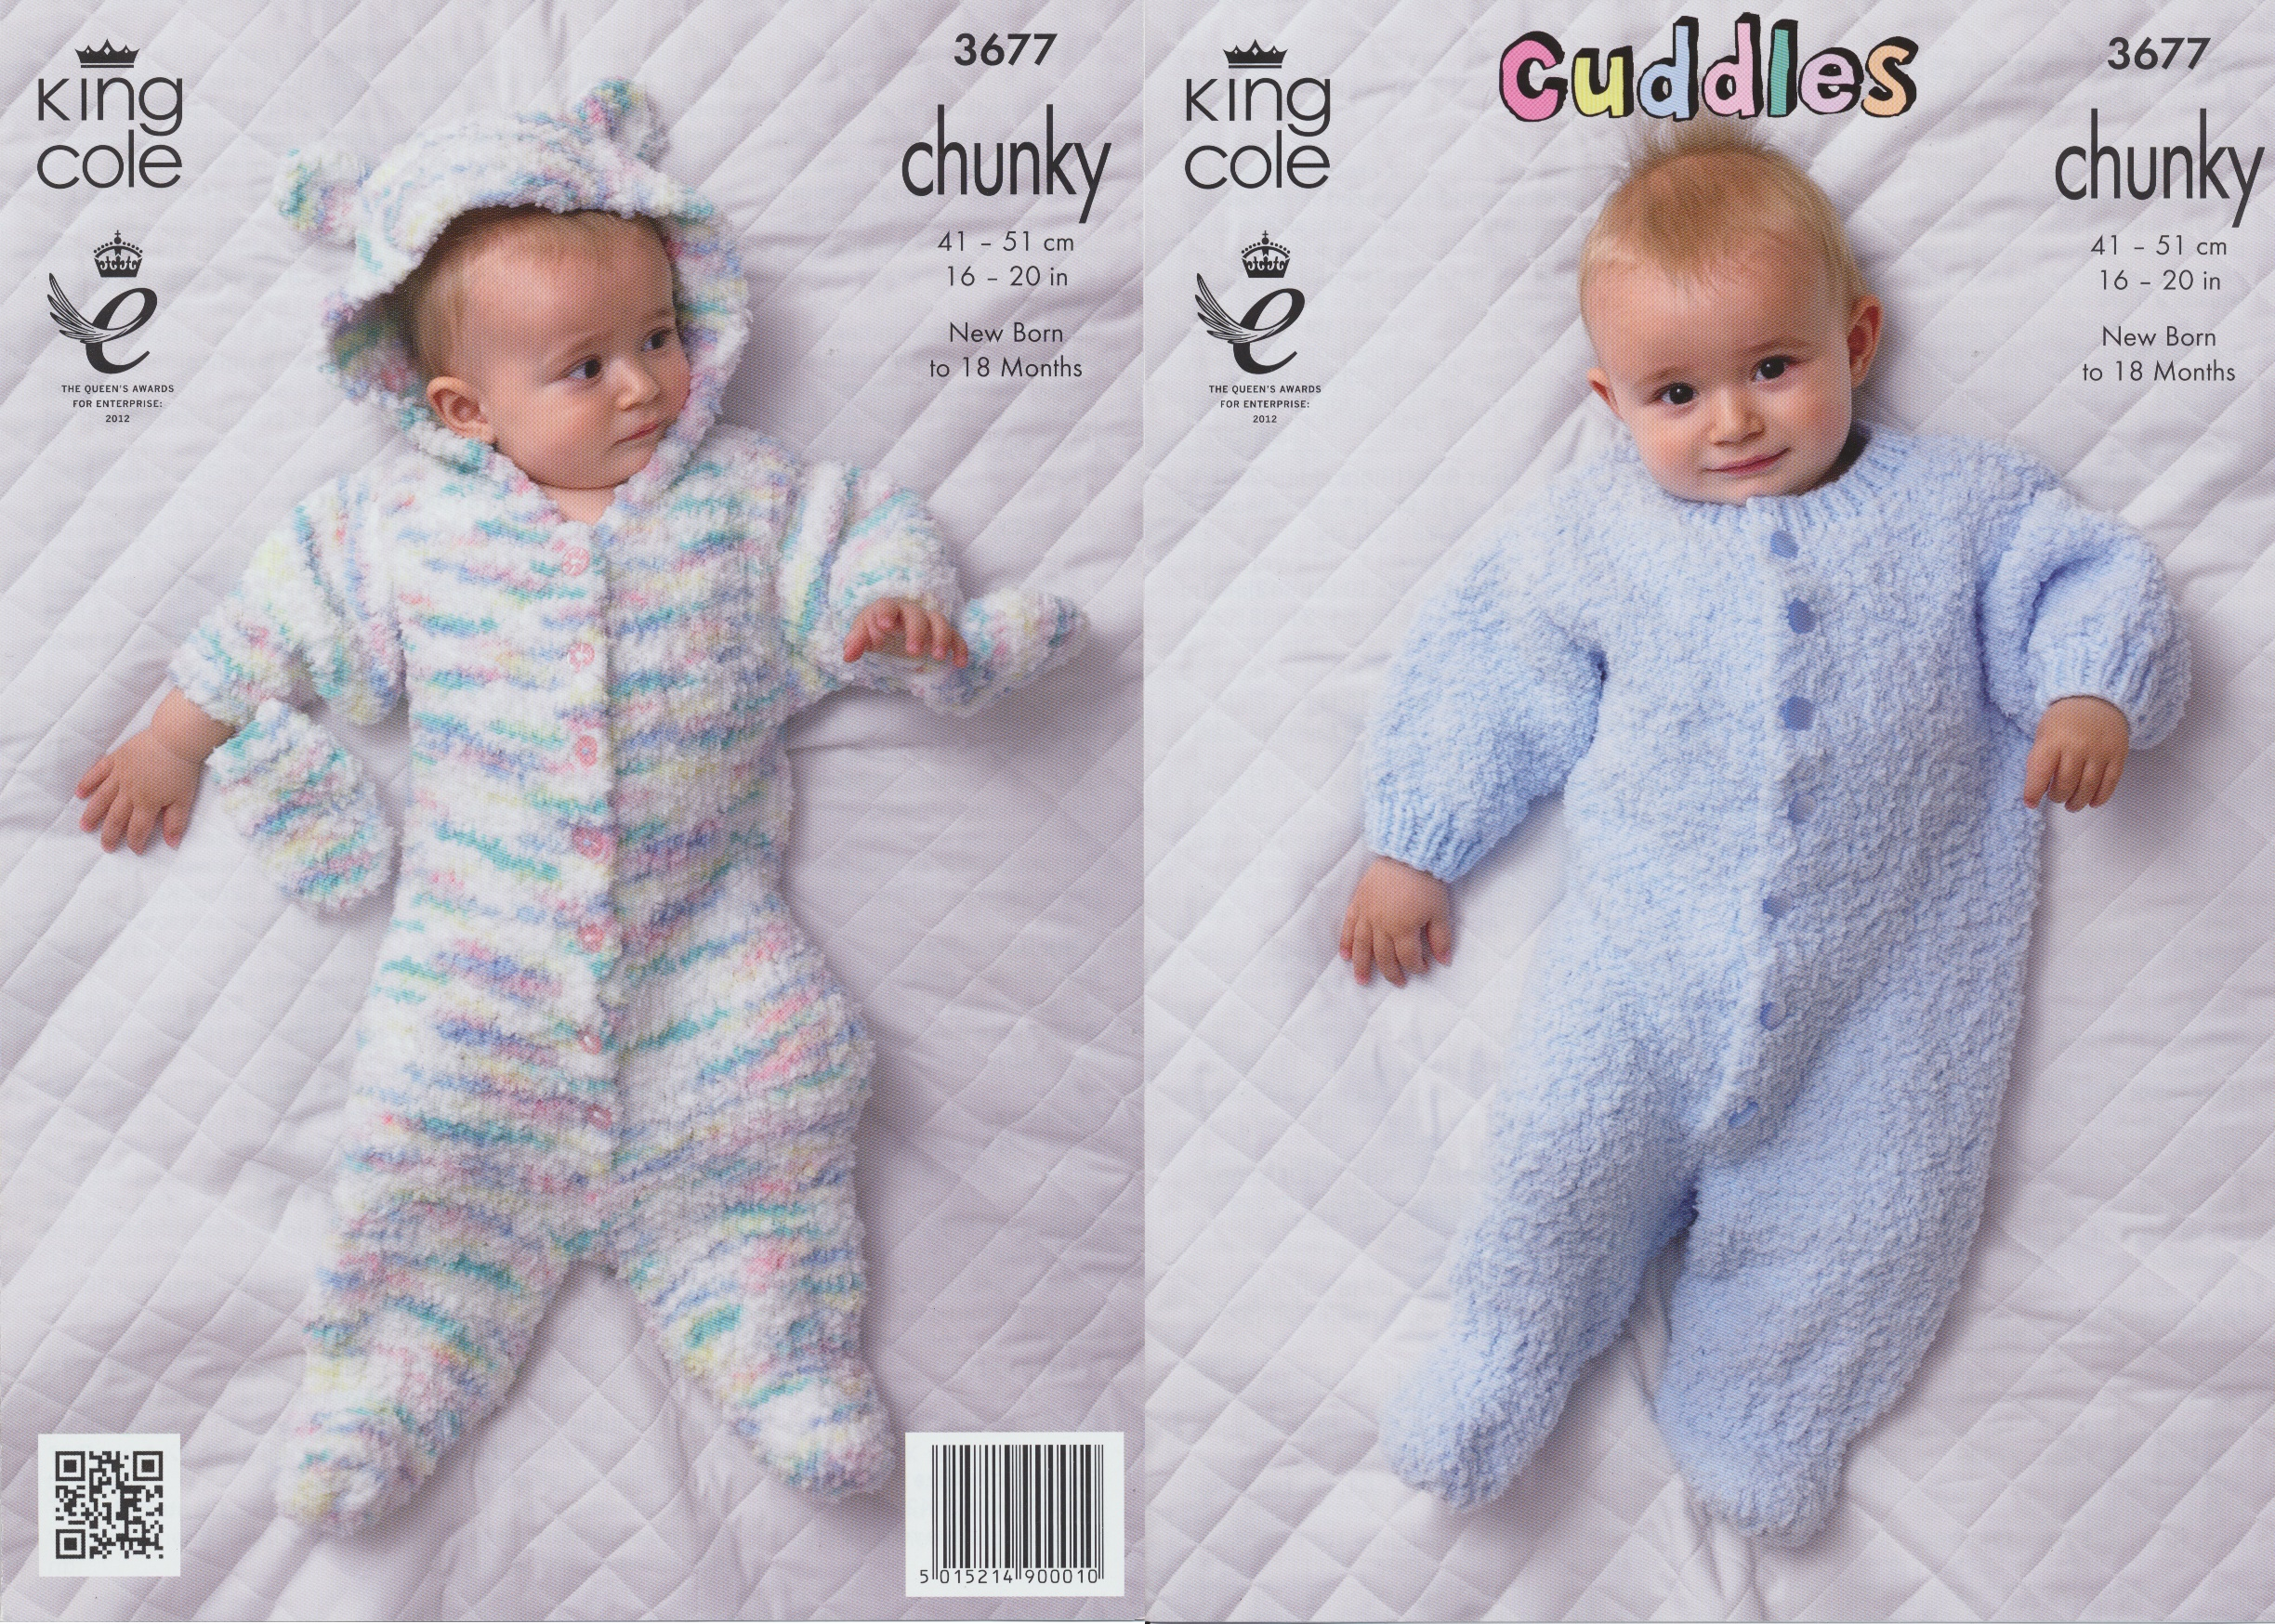 Cuddles Chunky Knitting Pattern King Cole Baby Hooded Snowsuit & Sleepsui...